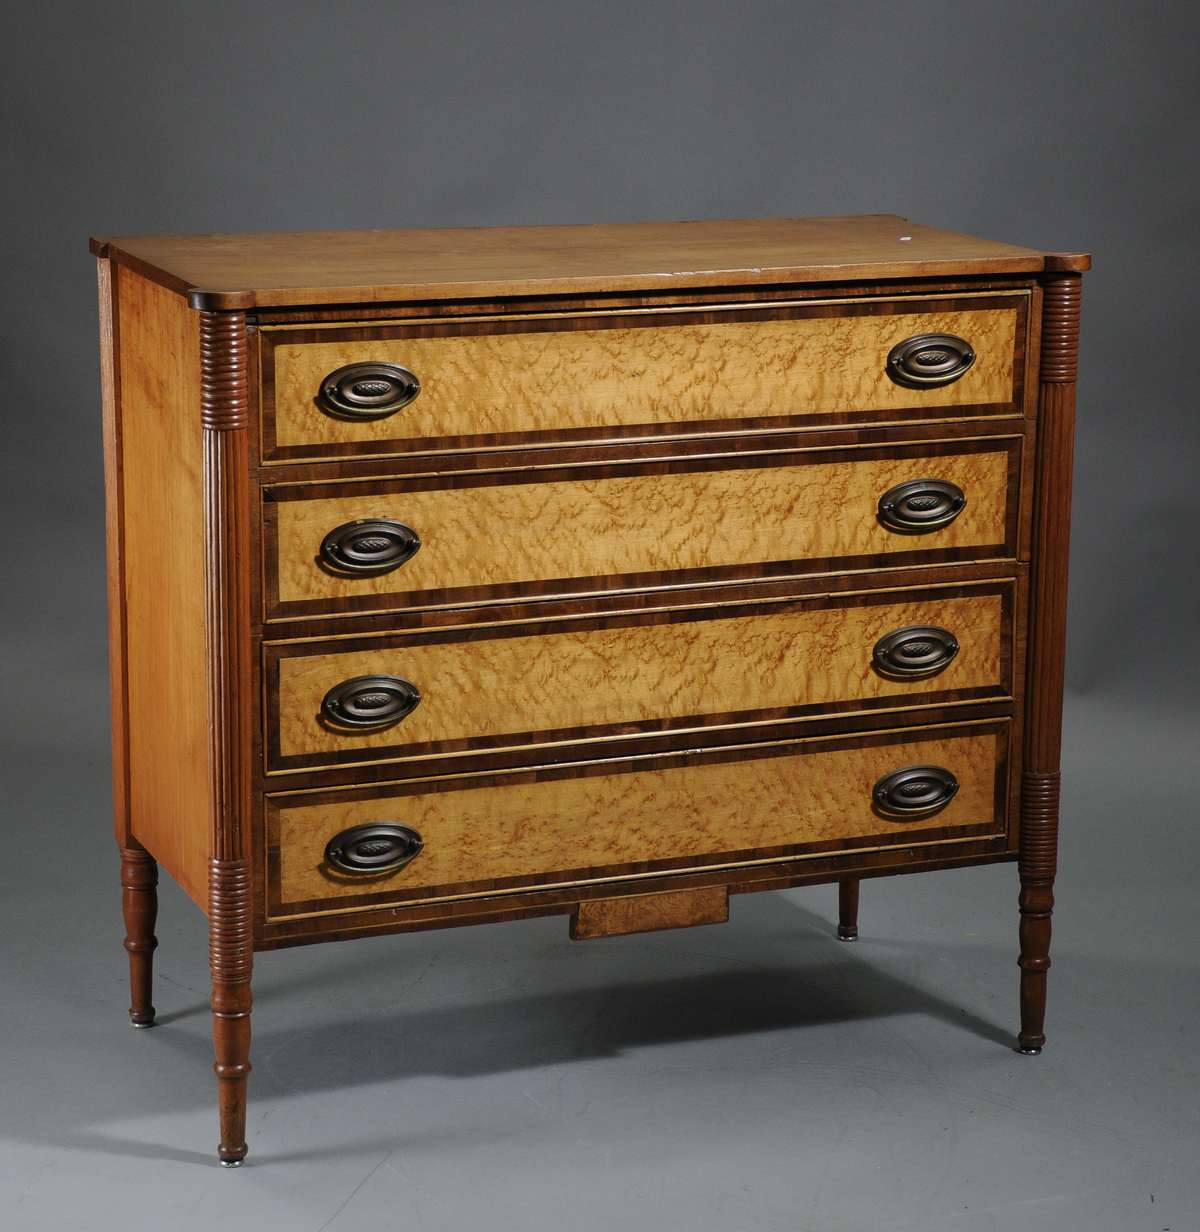 Antique Chest of Drawers New Hampshire - Doucette And Wolfe Fine Furniture  Makers: Antique Furniture - Antique Federal Furniture Antique Furniture